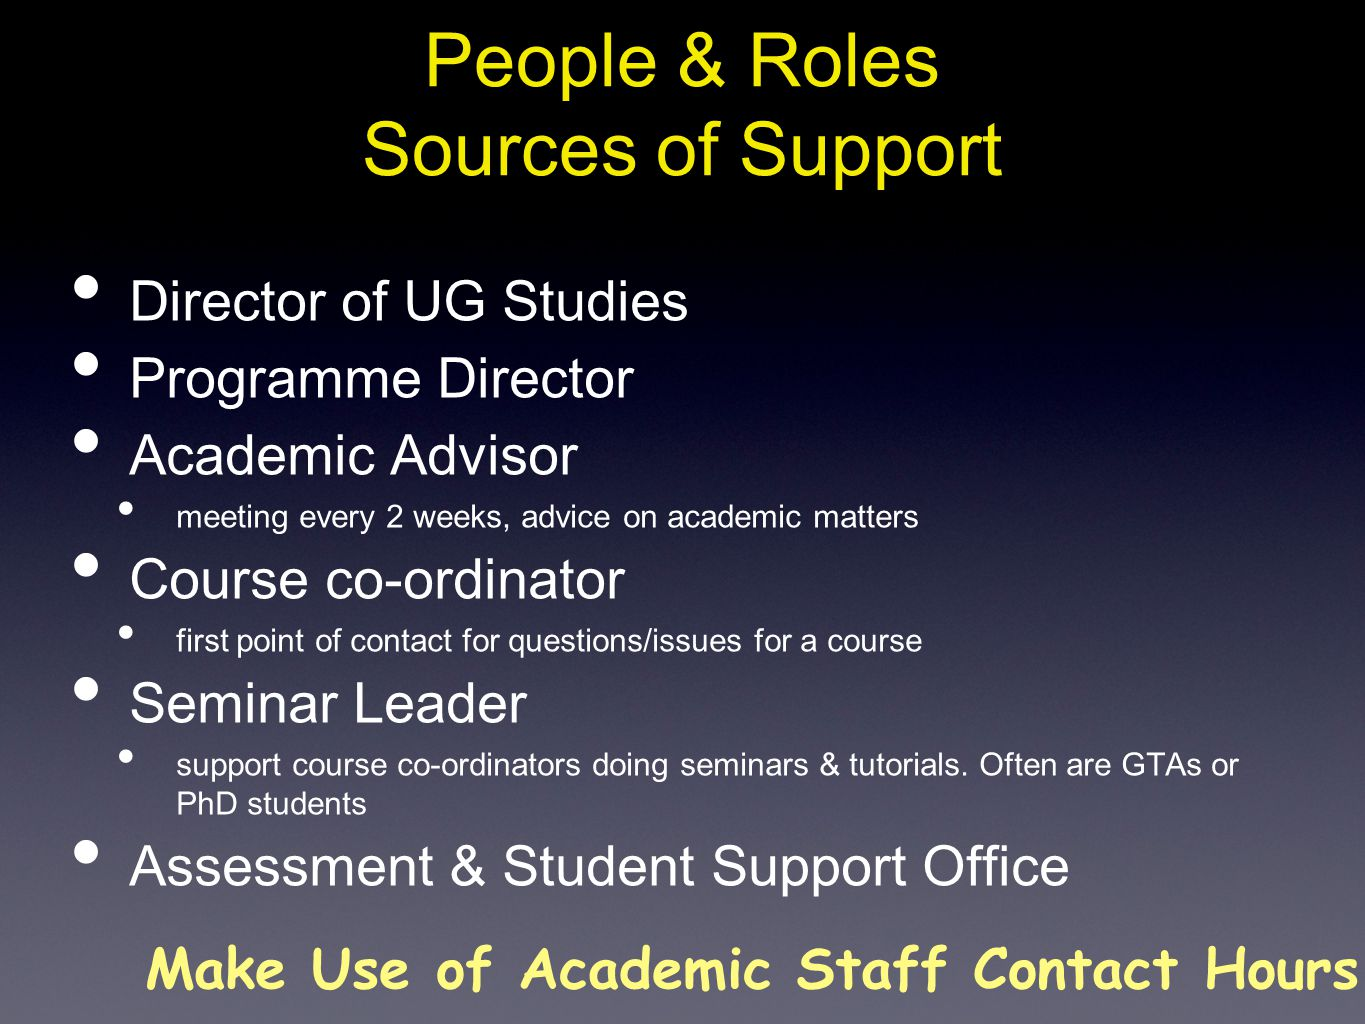 People & Roles Sources of Support Director of UG Studies Programme Director Academic Advisor meeting every 2 weeks, advice on academic matters Course